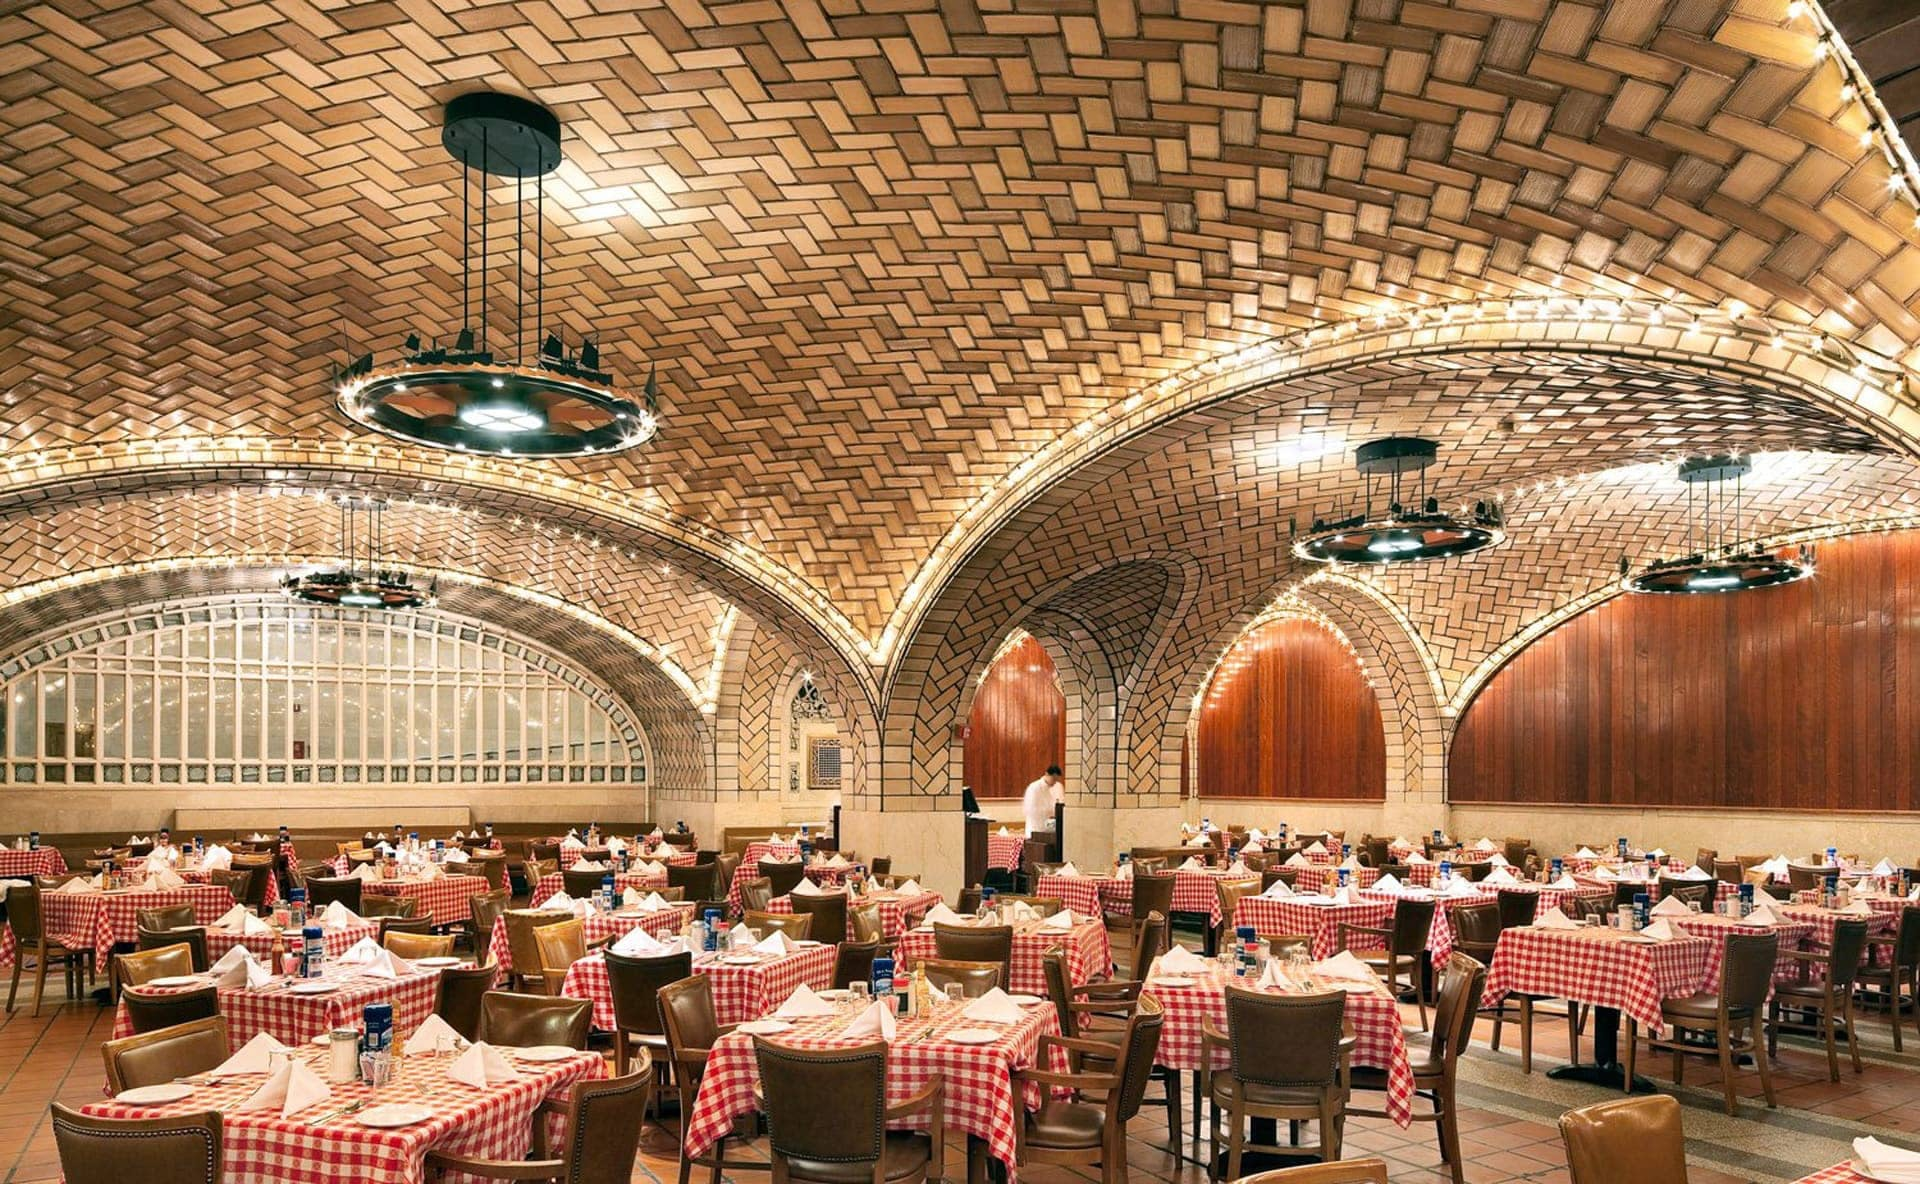 Interior of Grand Central Oyster Bar, New York